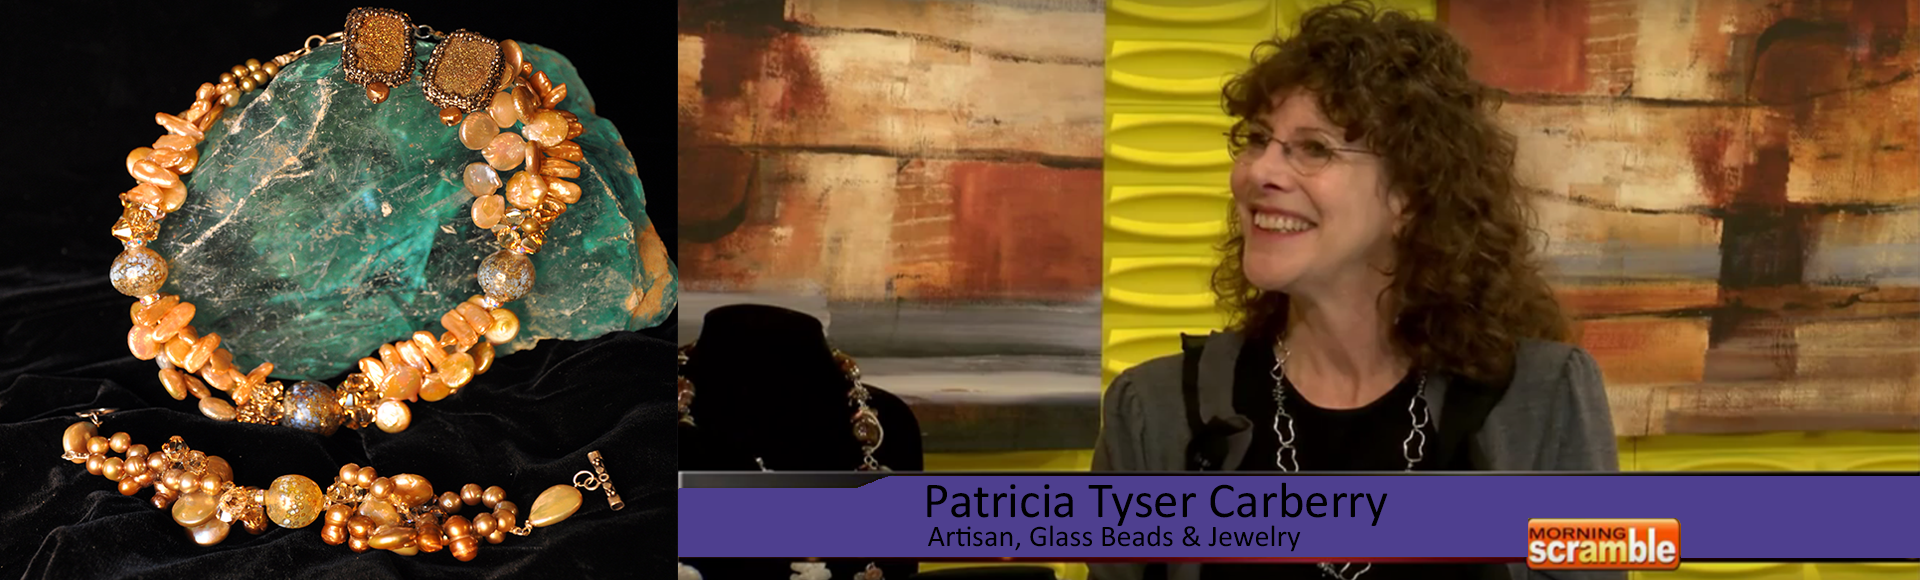 TV Interview with Patricia